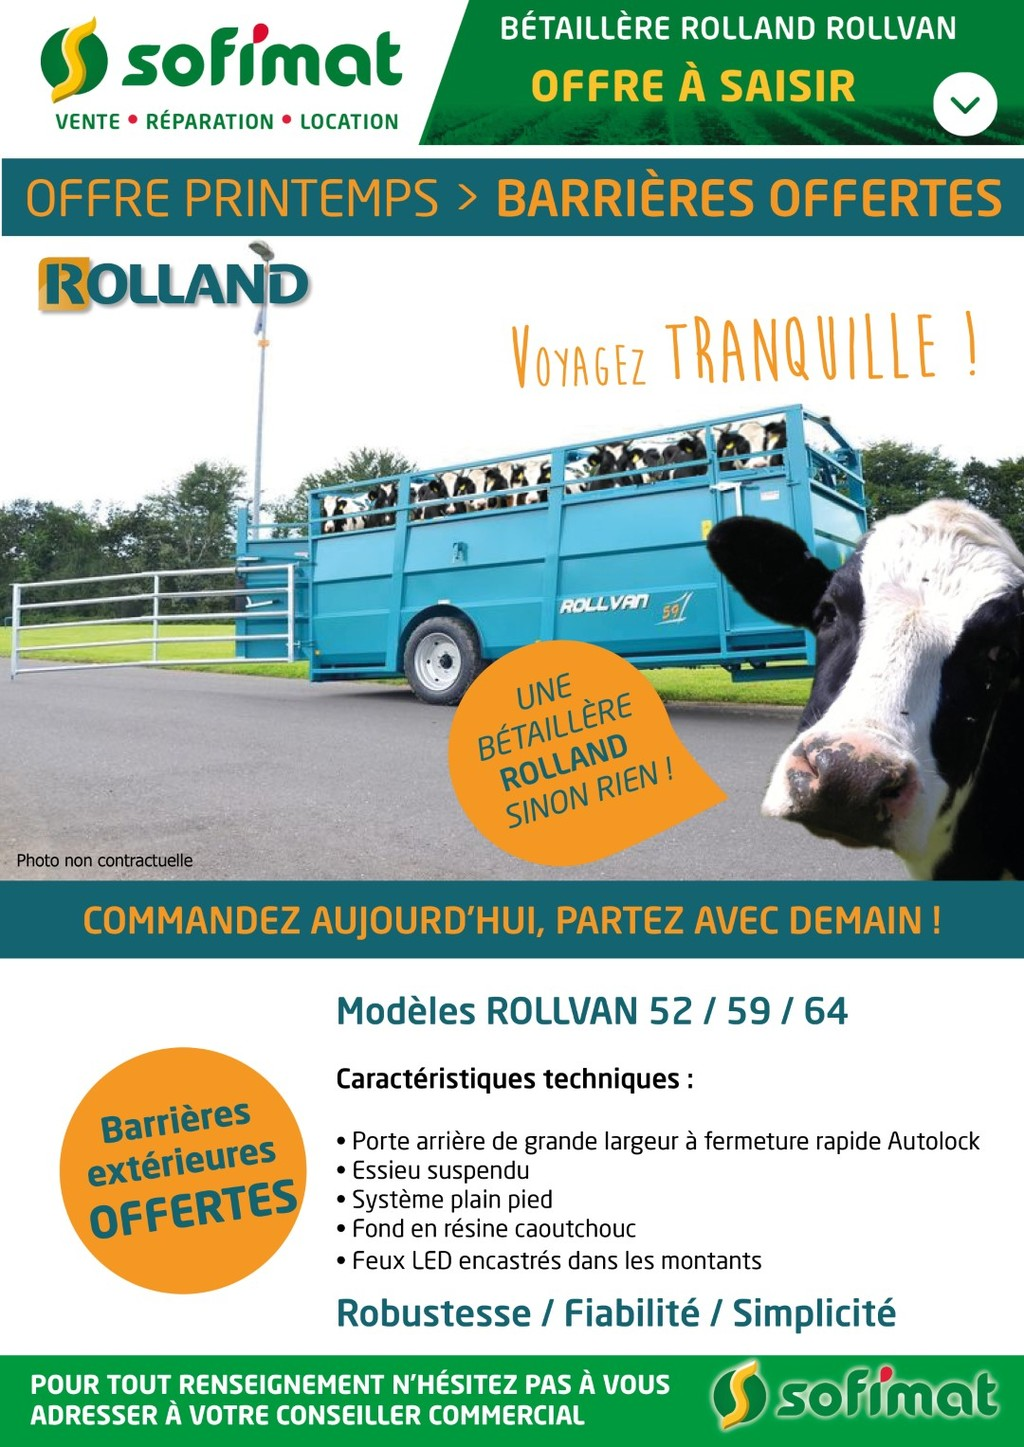 sofimat-offre-promotion-vehicule-betaillere-rolland-rollvan-barriere-exterieure-offerte-finistere-29-morbihan-56-bretagne-mars-2020